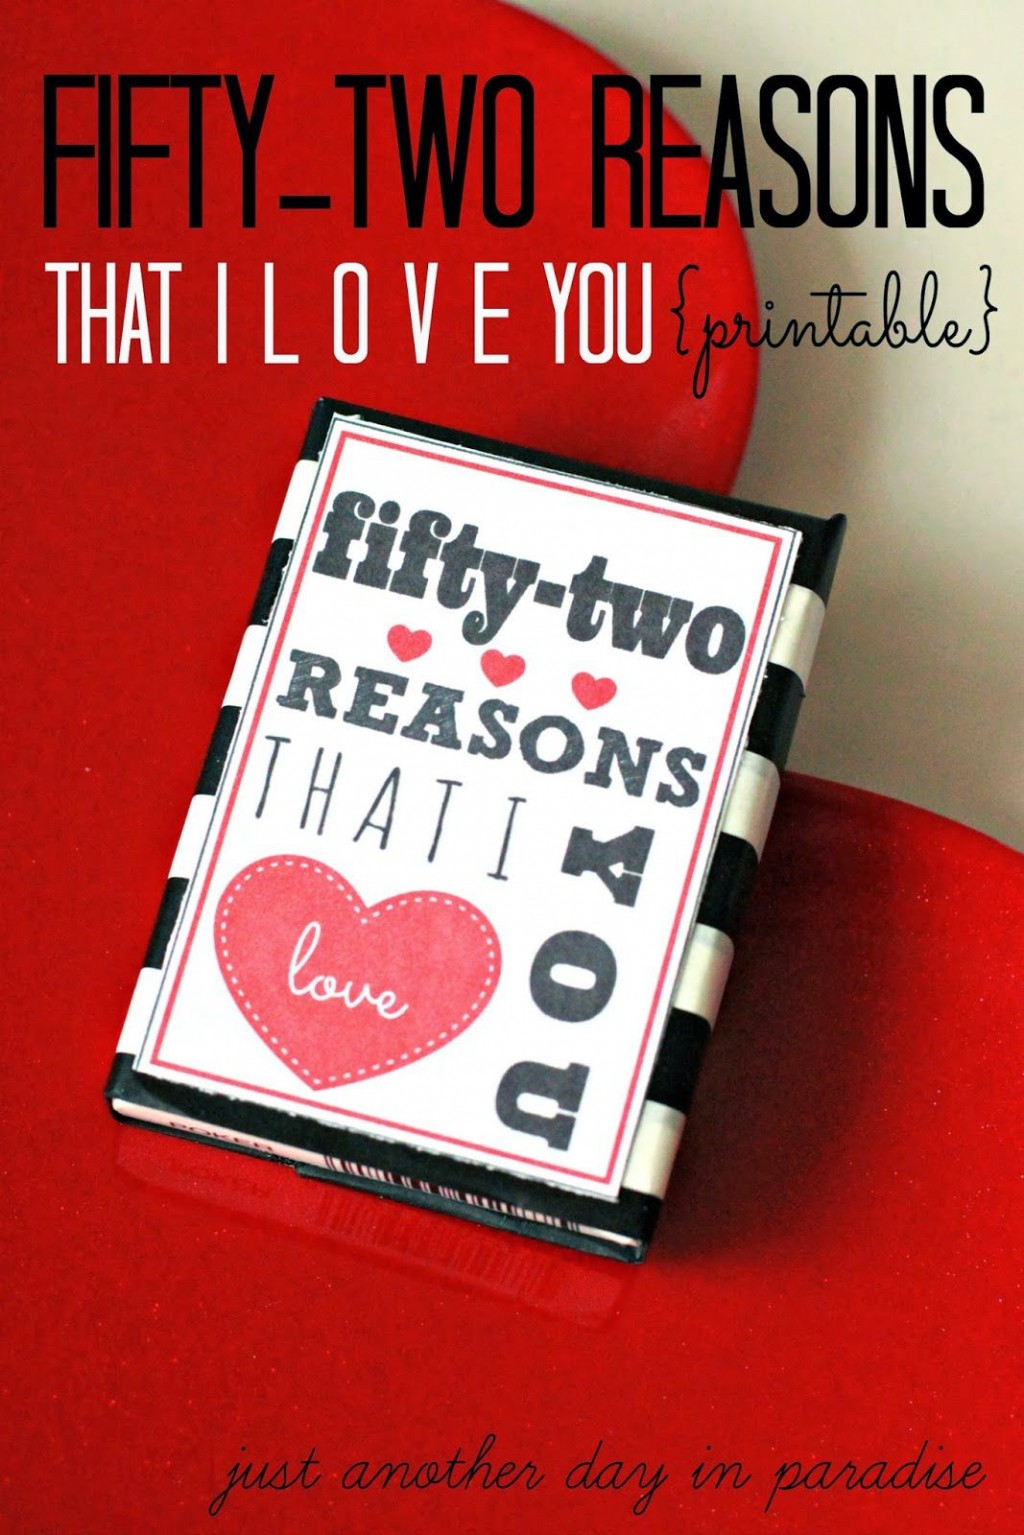 003 Fearsome 52 Reason Why I Love You Deck Of Card Free Template Highest Quality Large